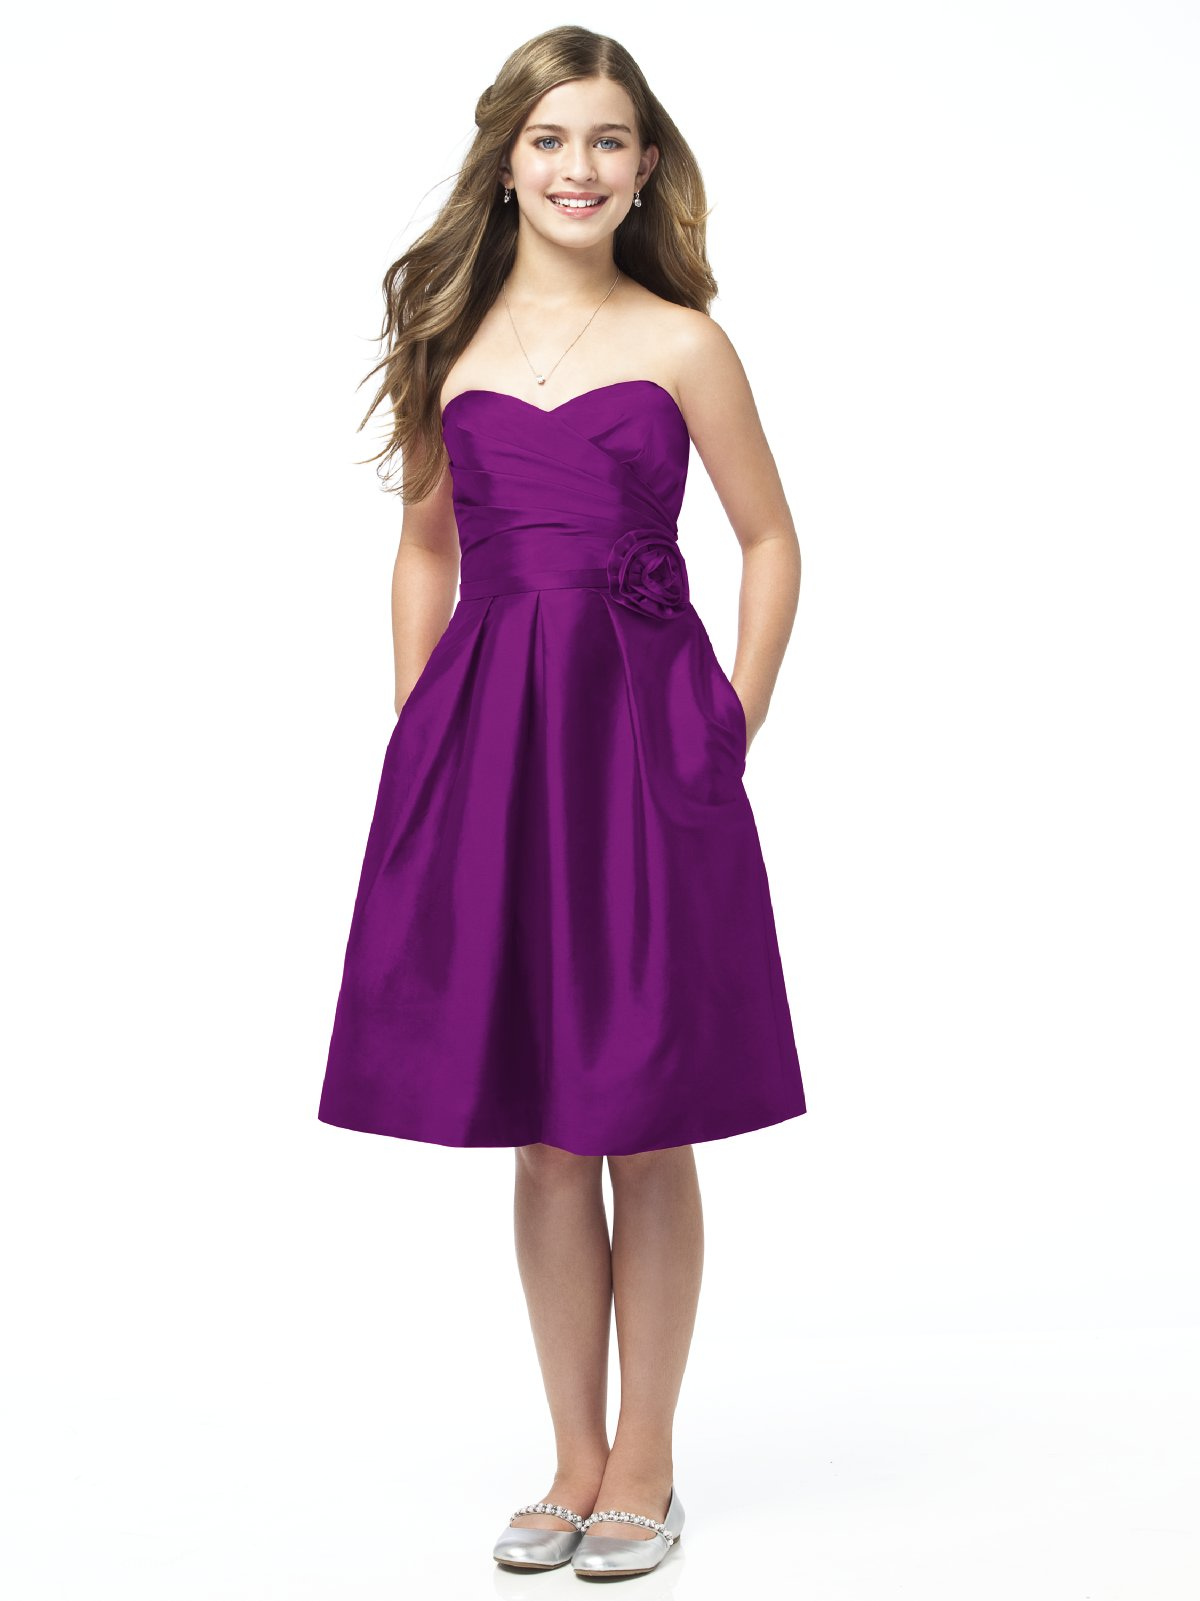 Purple A Line Strapless Sweetheart Zipper Knee Length Satin Prom Dresses With Flowers And Pockets